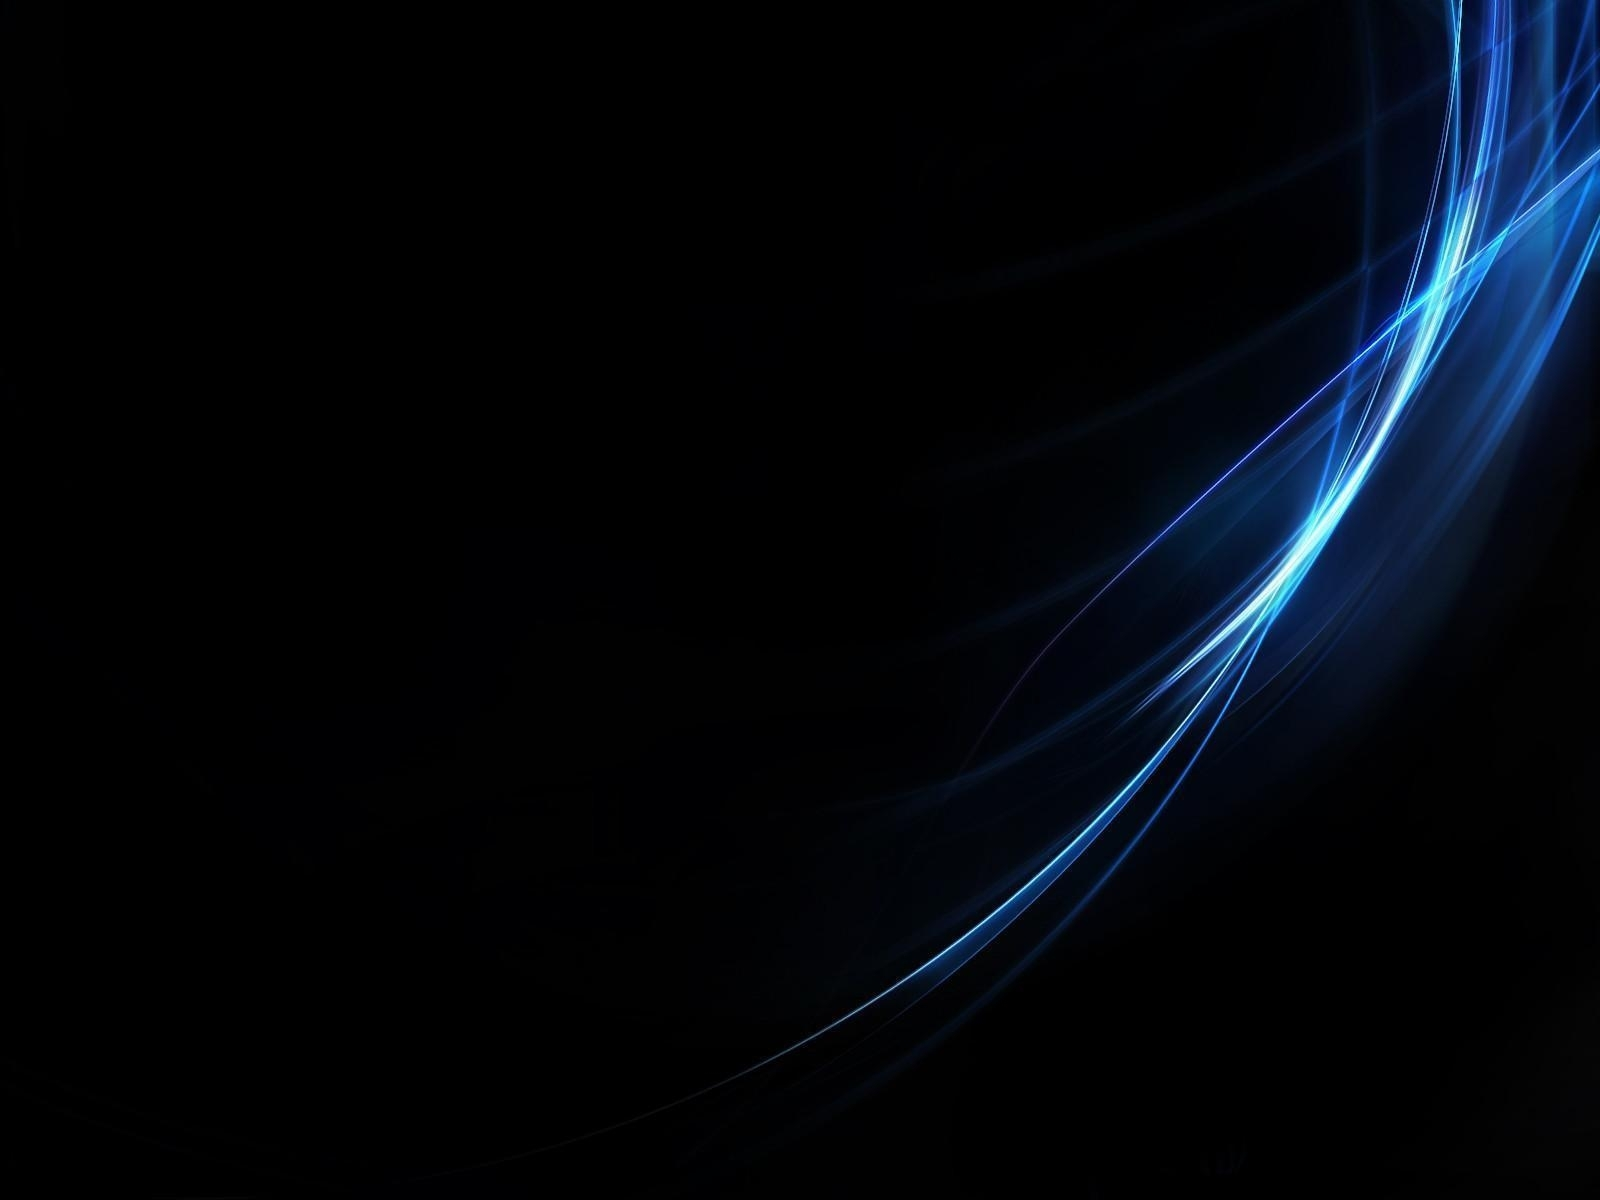 black and blue abstract wallpapers - wallpaper cave